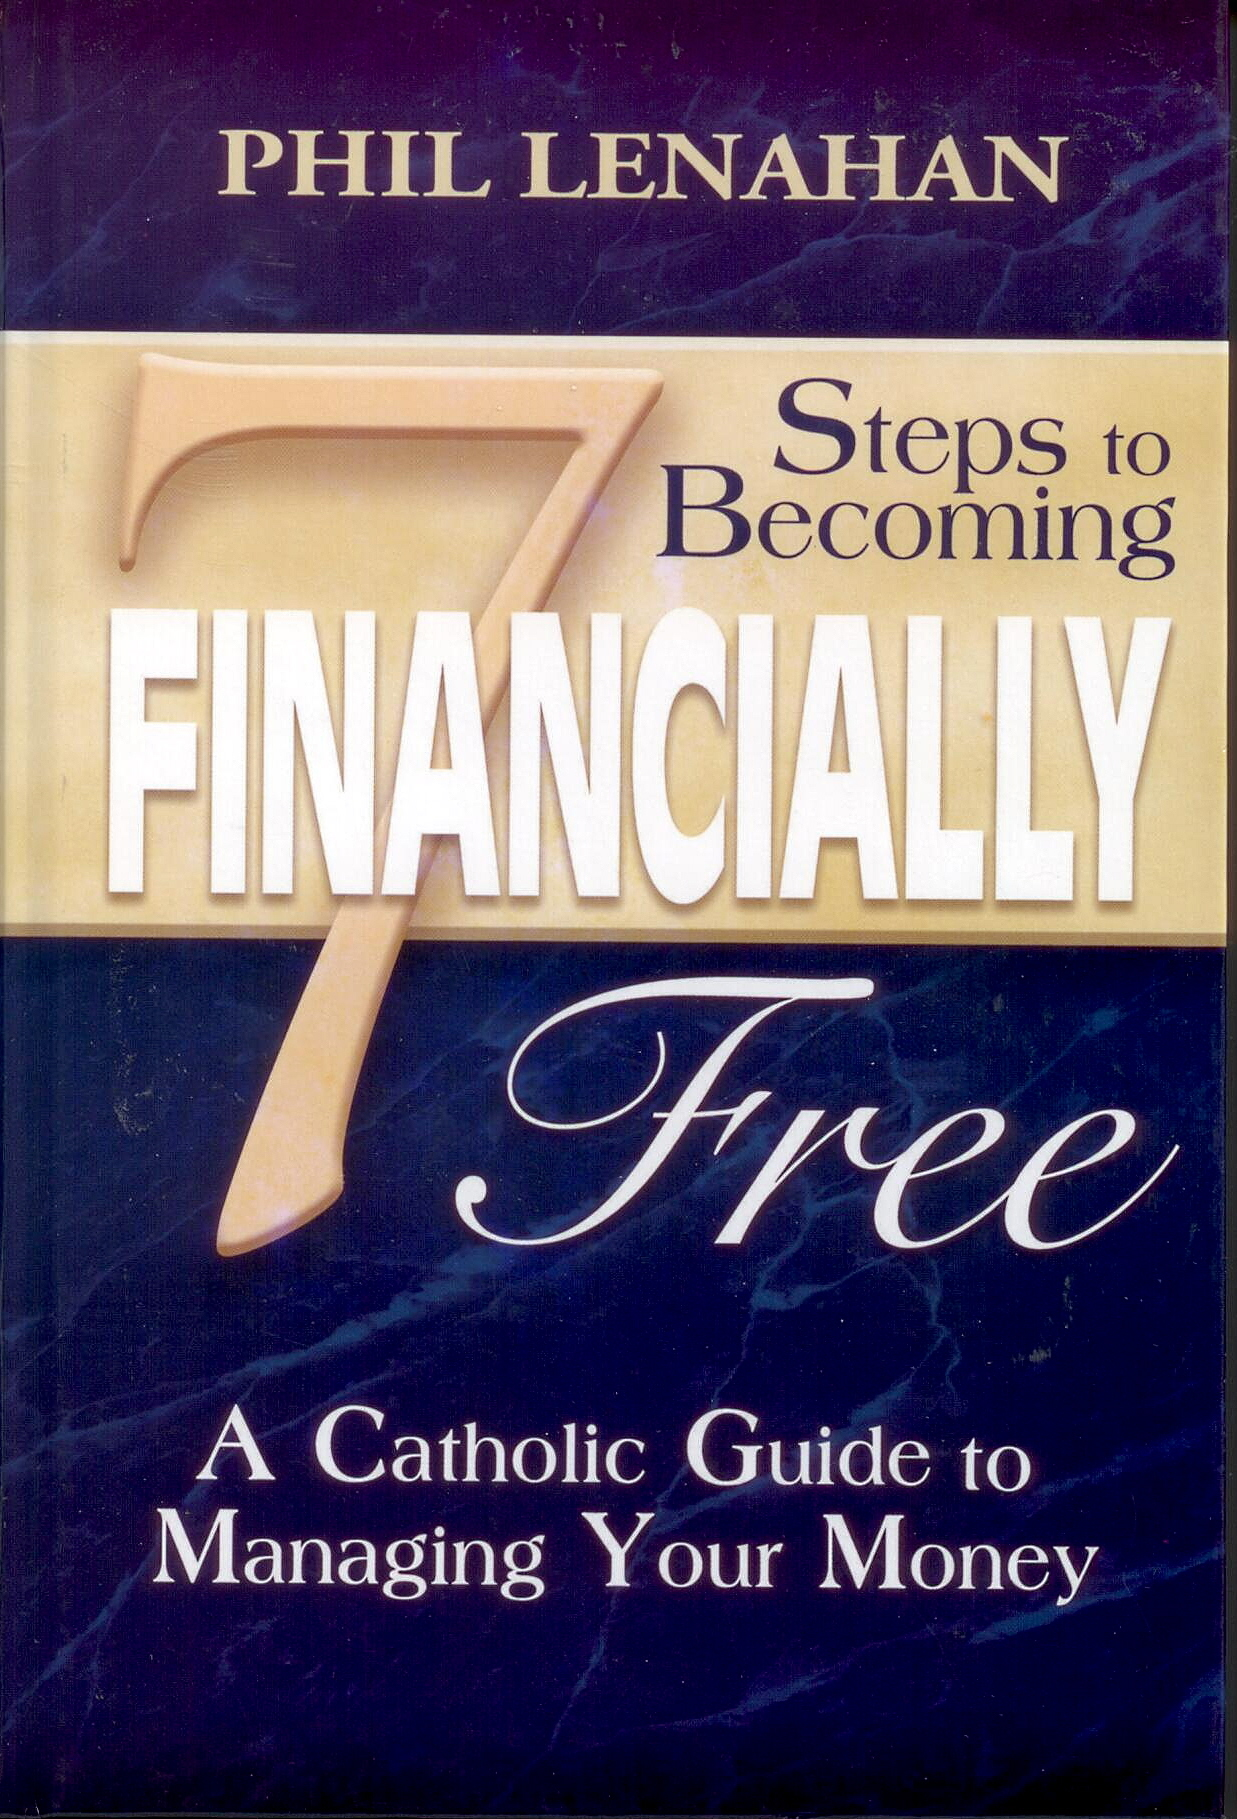 7 Steps To Becoming Financially Free by Phil Lenahan